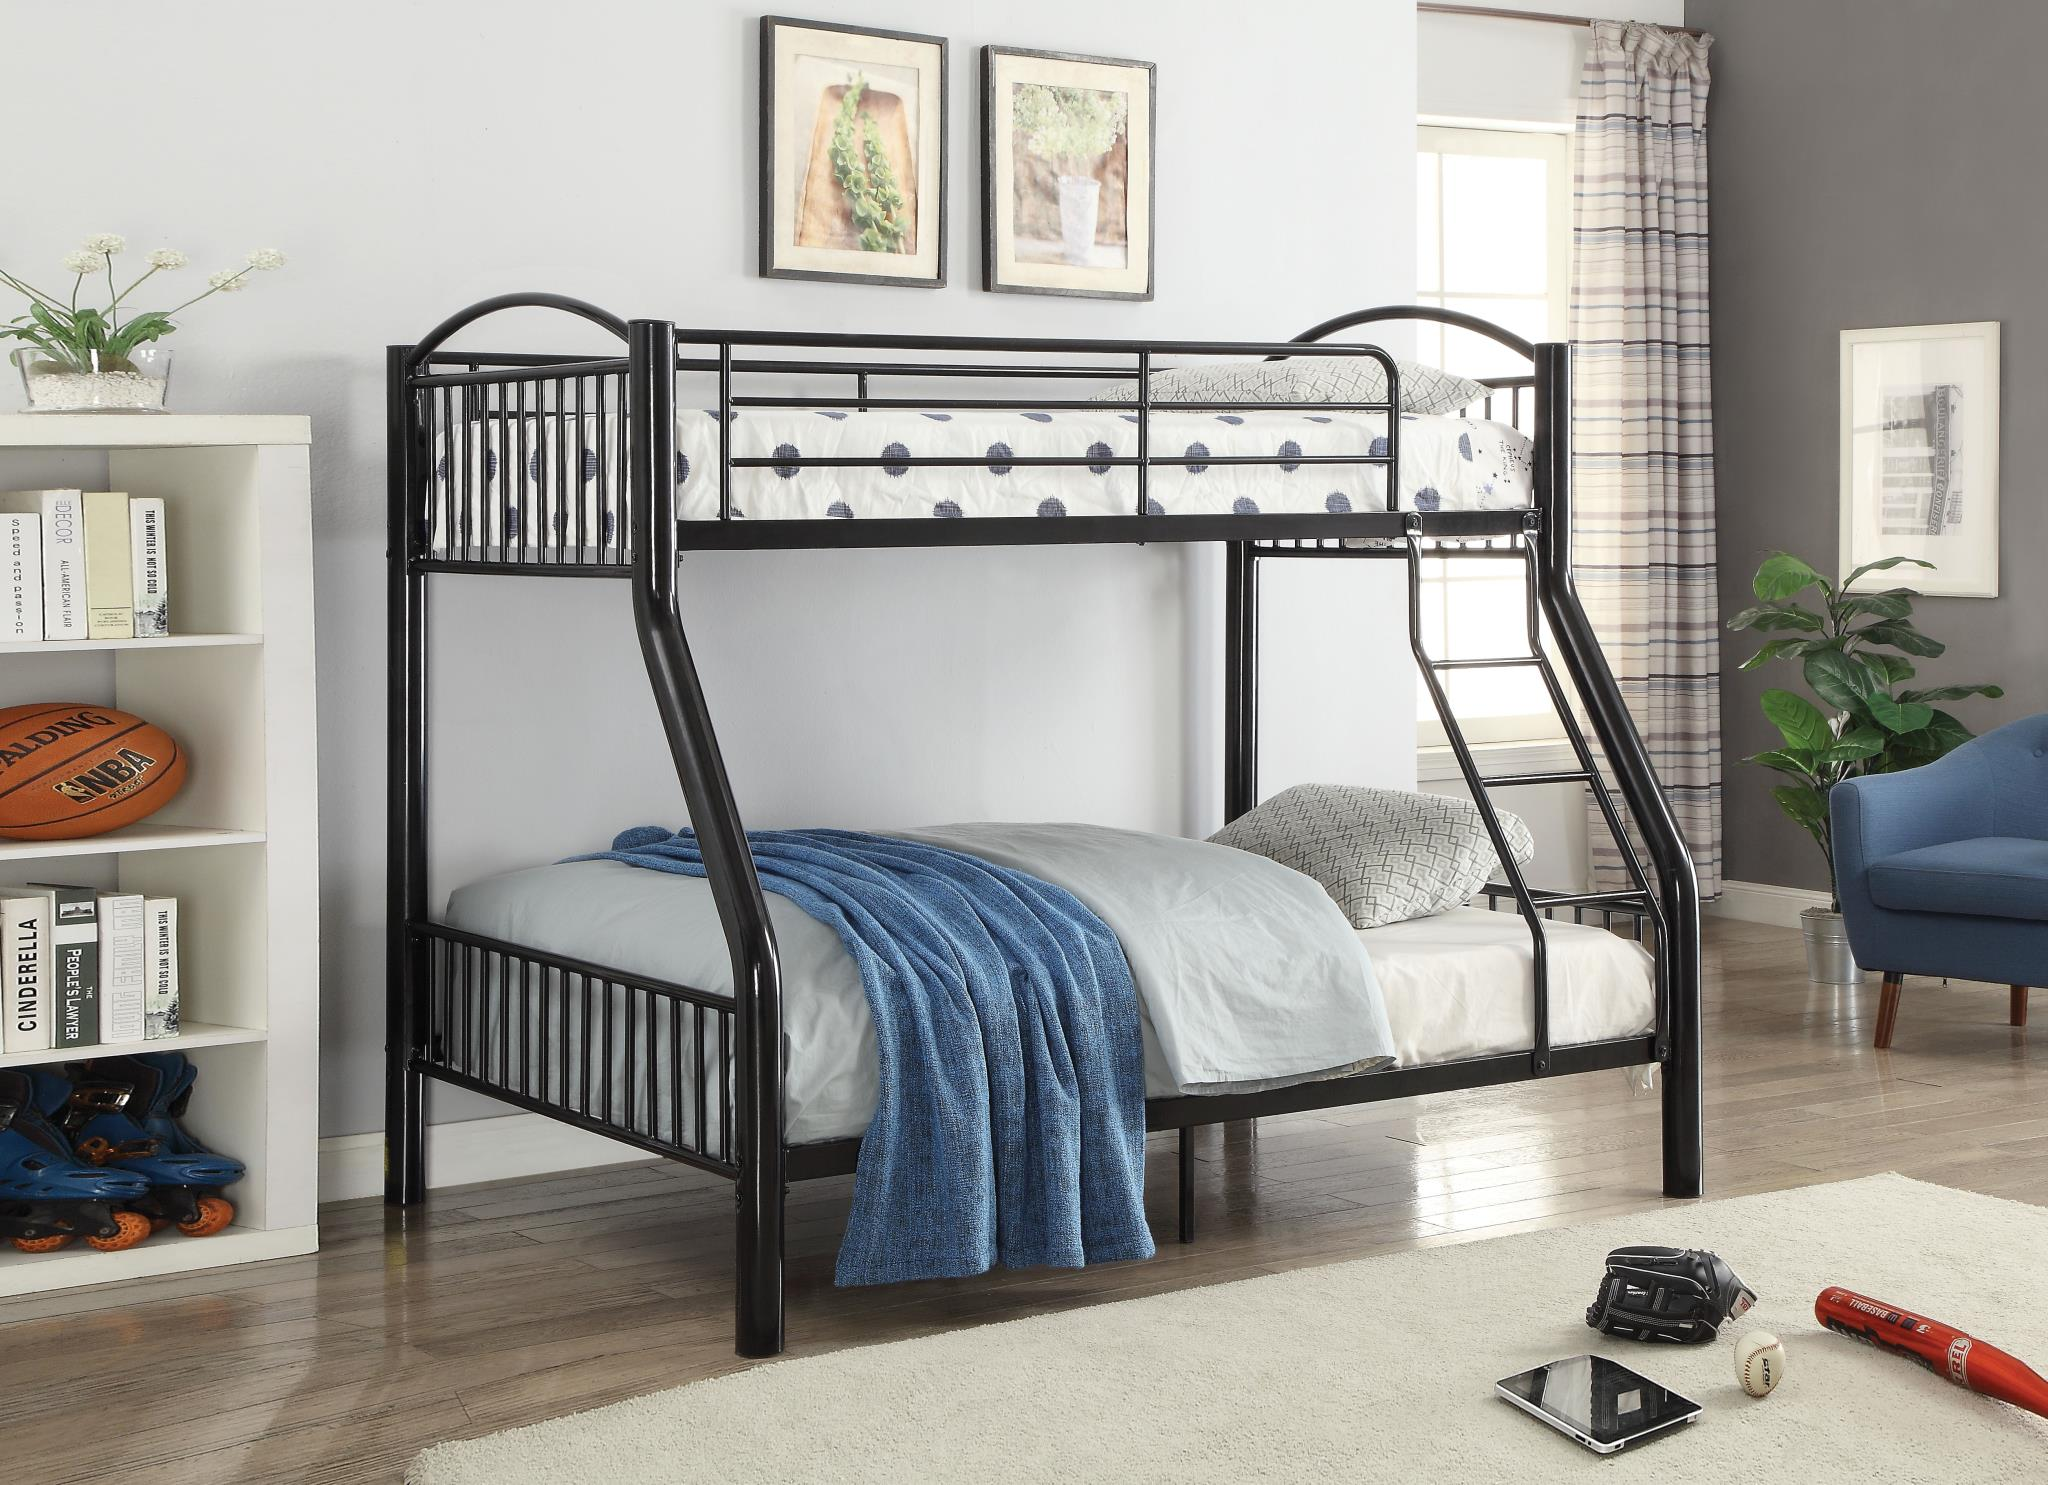 Black Twin/Full Bunk Bed